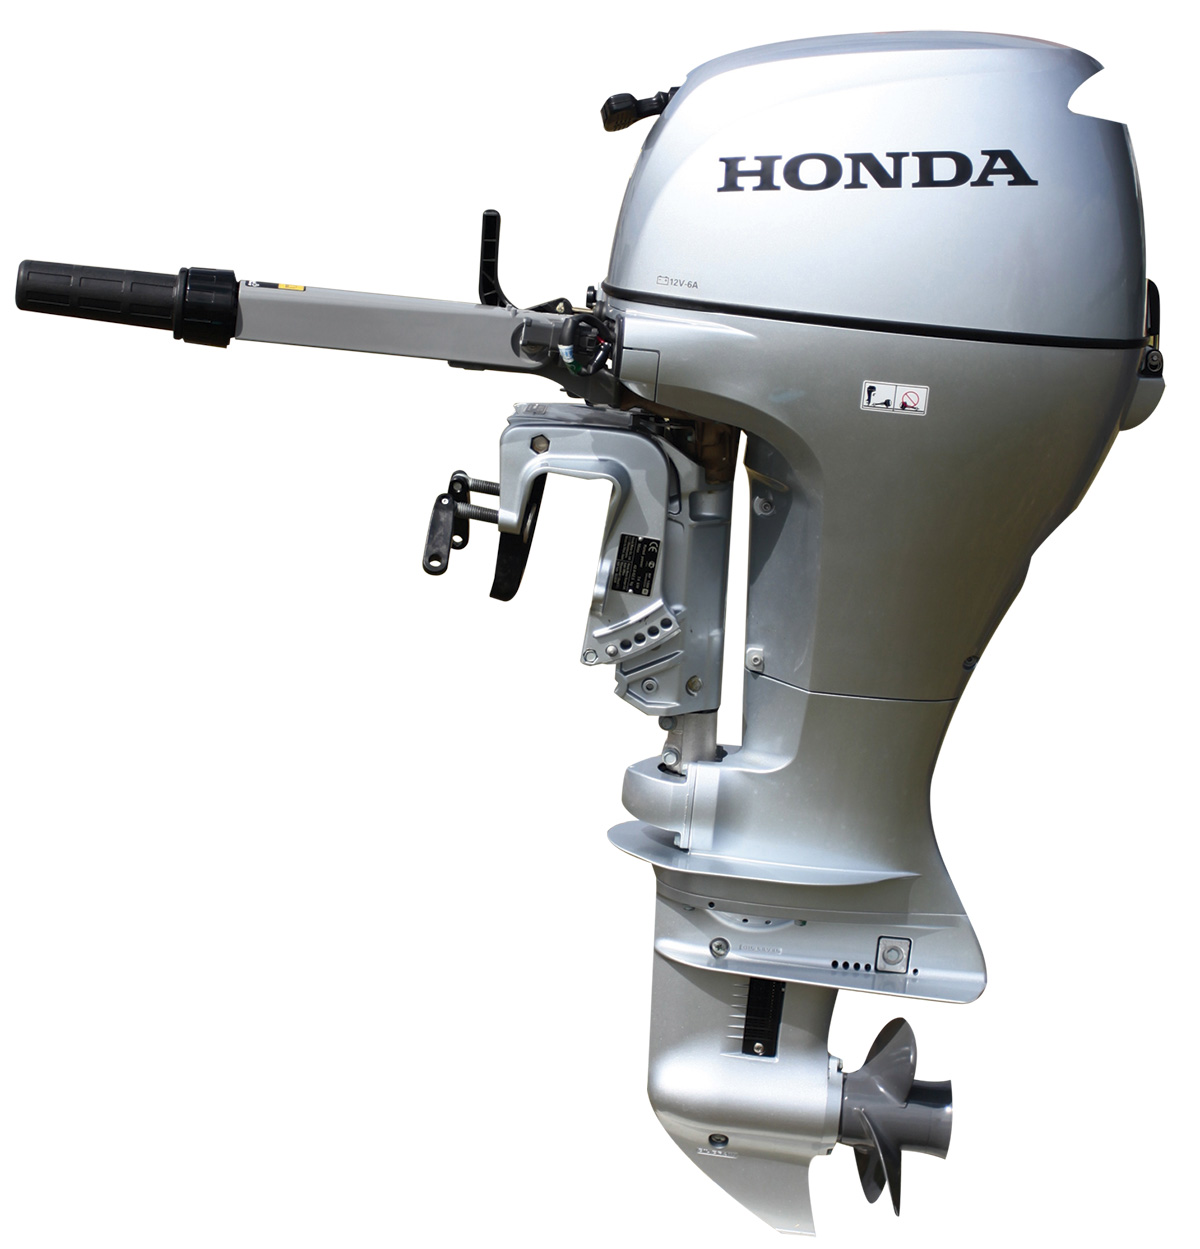 mechanics we price honda the repairs motors best huge in service dedicated trained and at have to motor a our investment are workshop outboard provide mobile